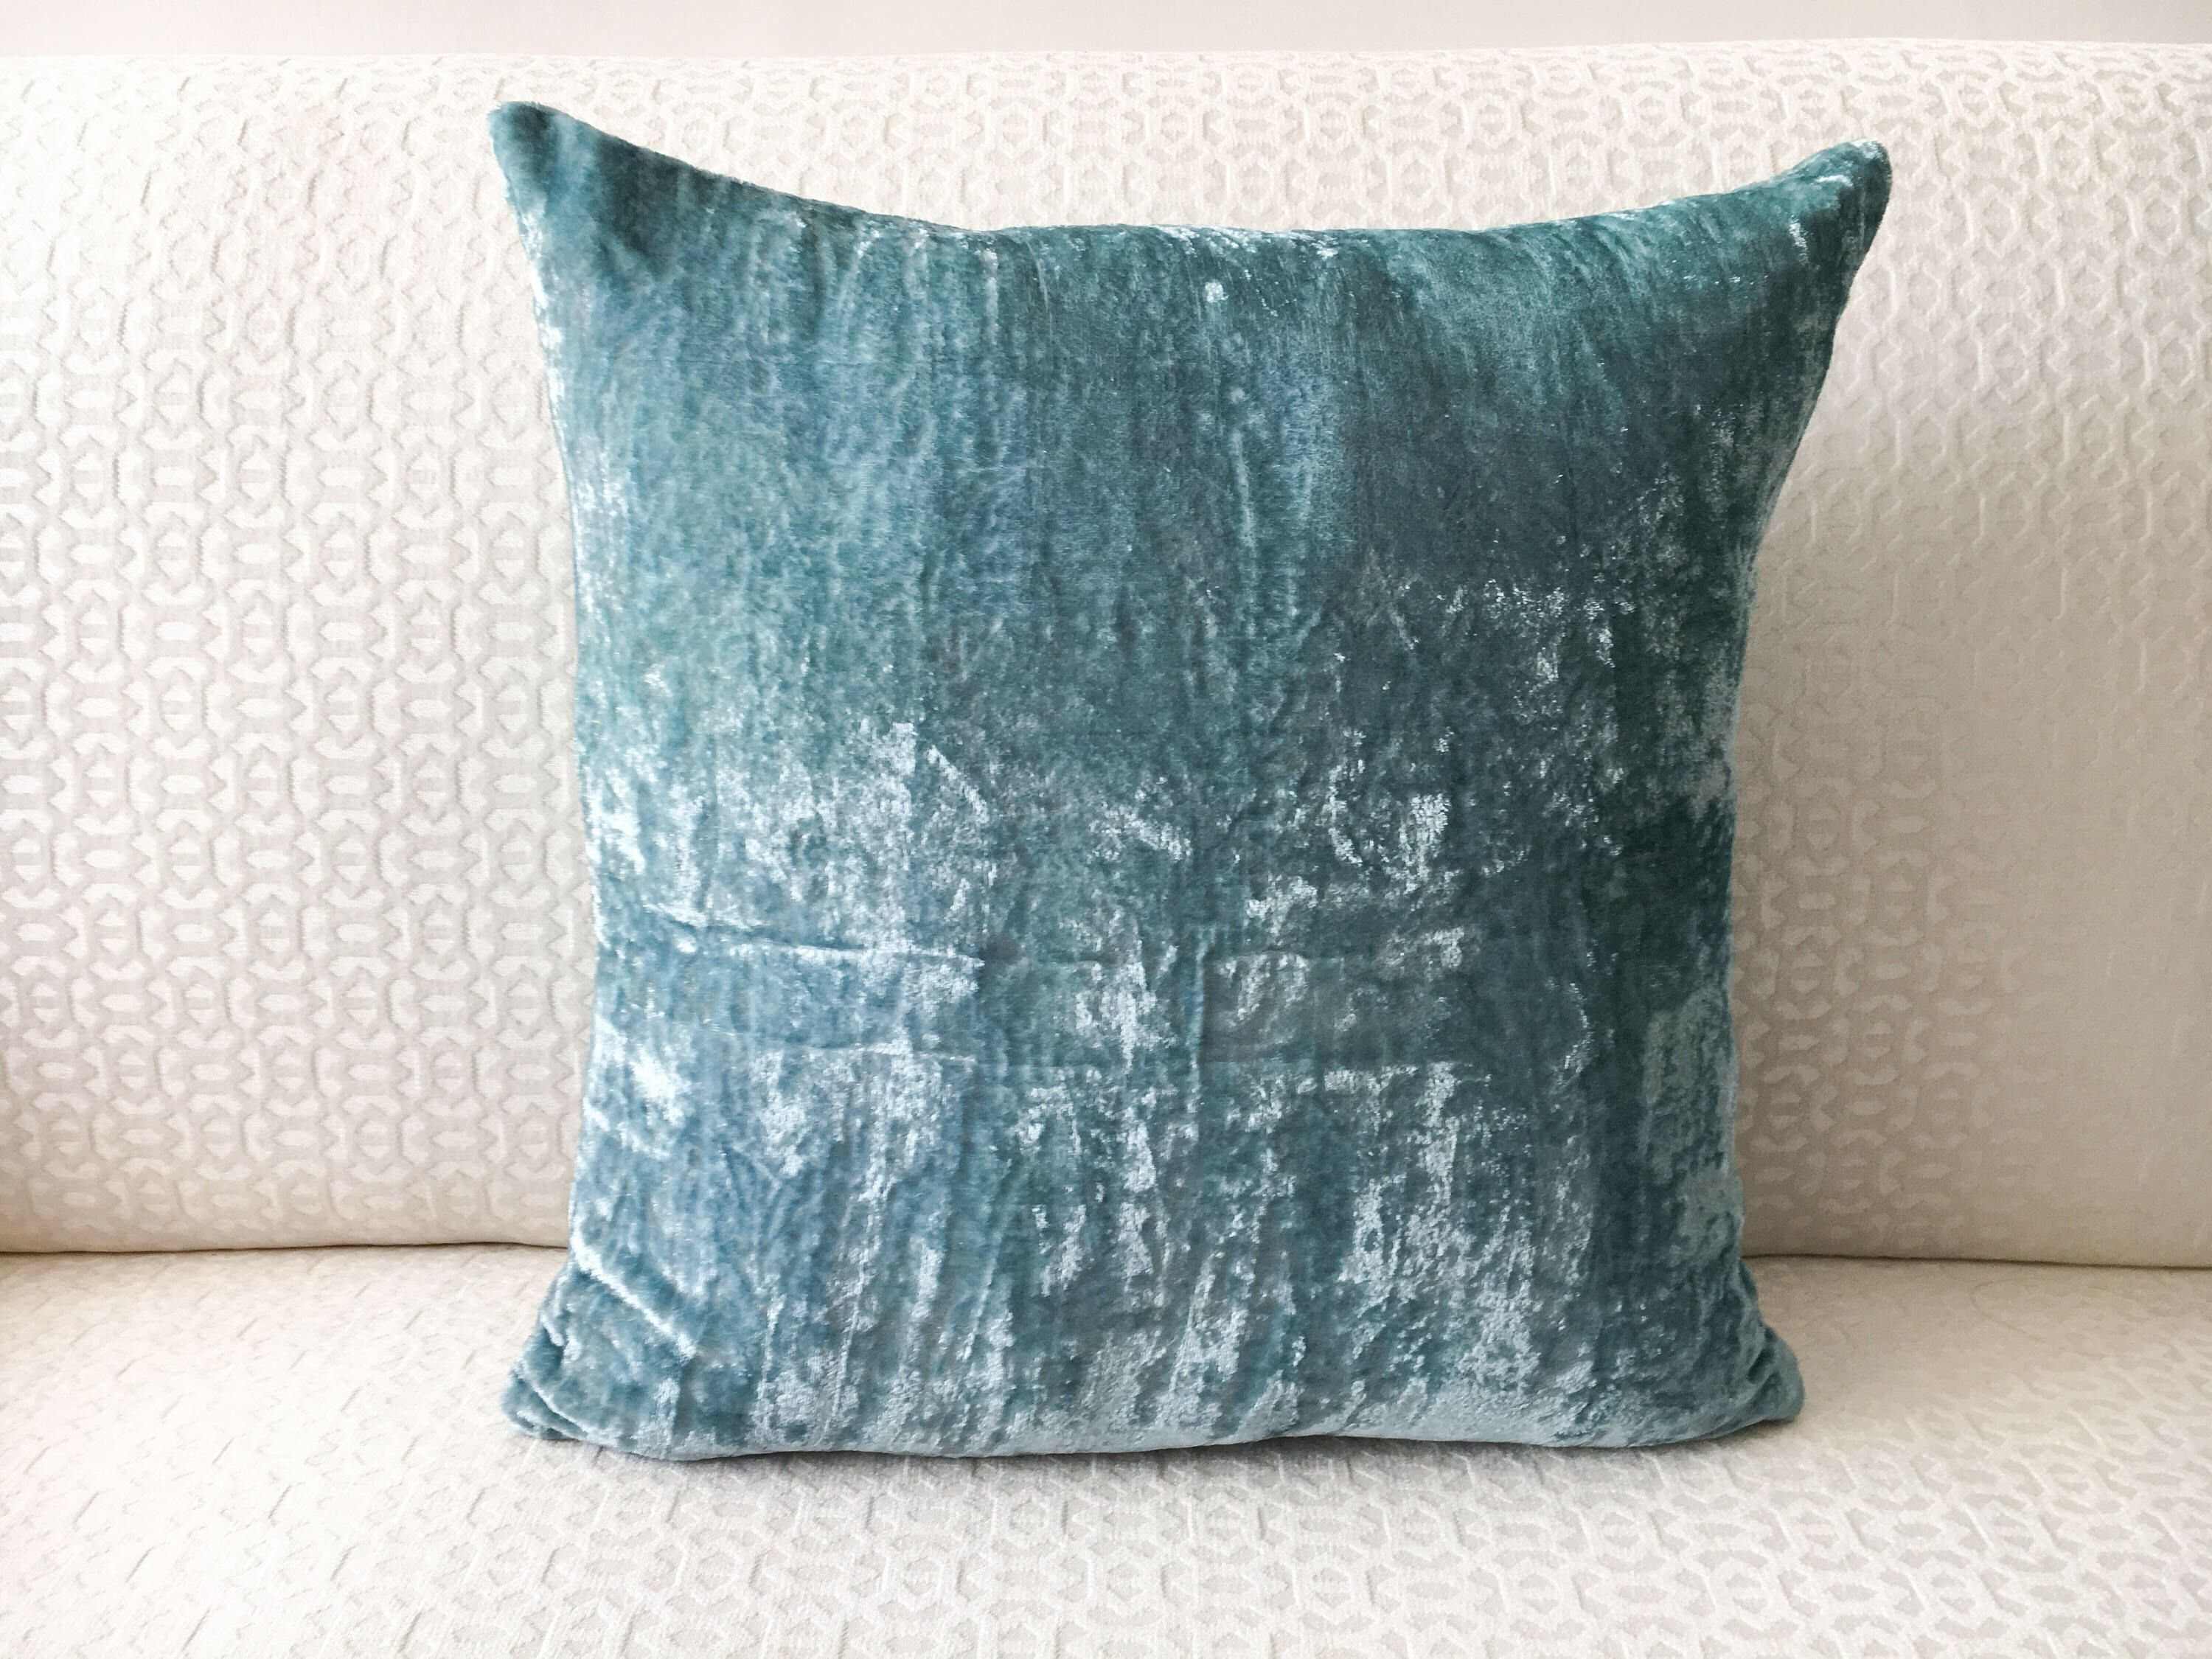 Teal Blue Velvet Euro Sham 26x26 Pillow Cover 24x24 22x22 20x26 20x36 28x28 Silk Case For Sofa By Drapely On Etsy